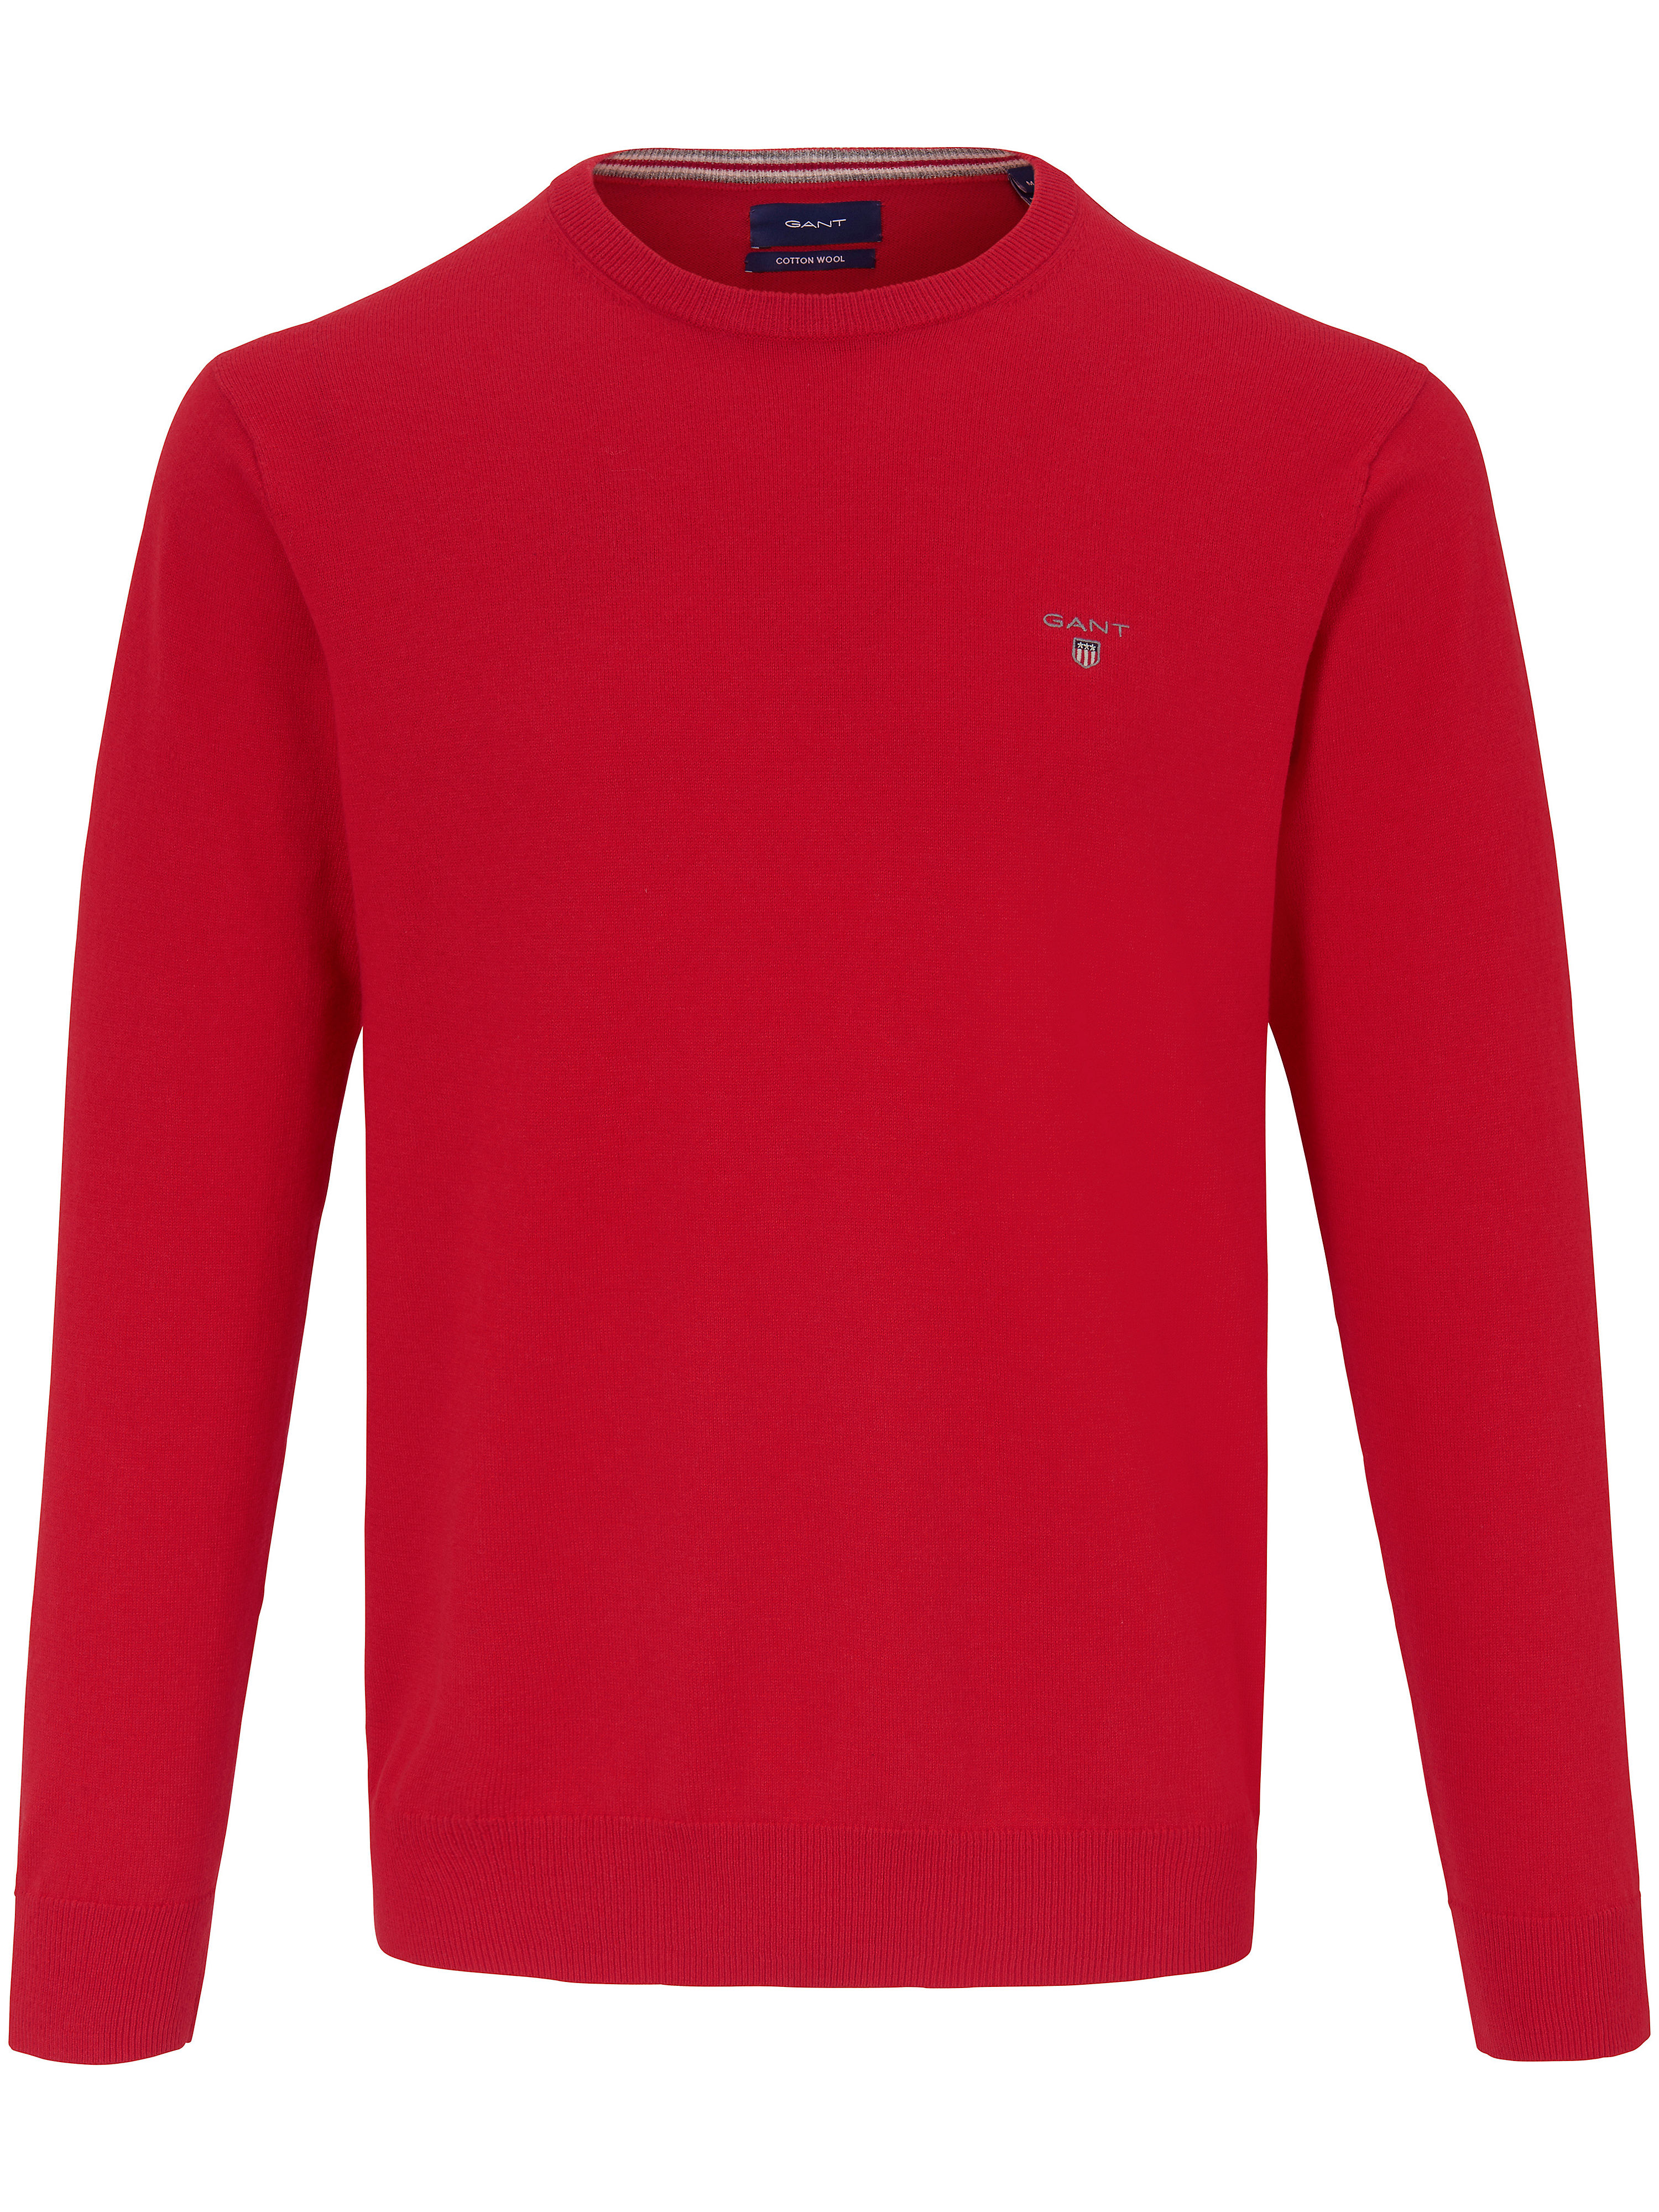 Le pull col ras-du-cou  GANT rouge taille 58